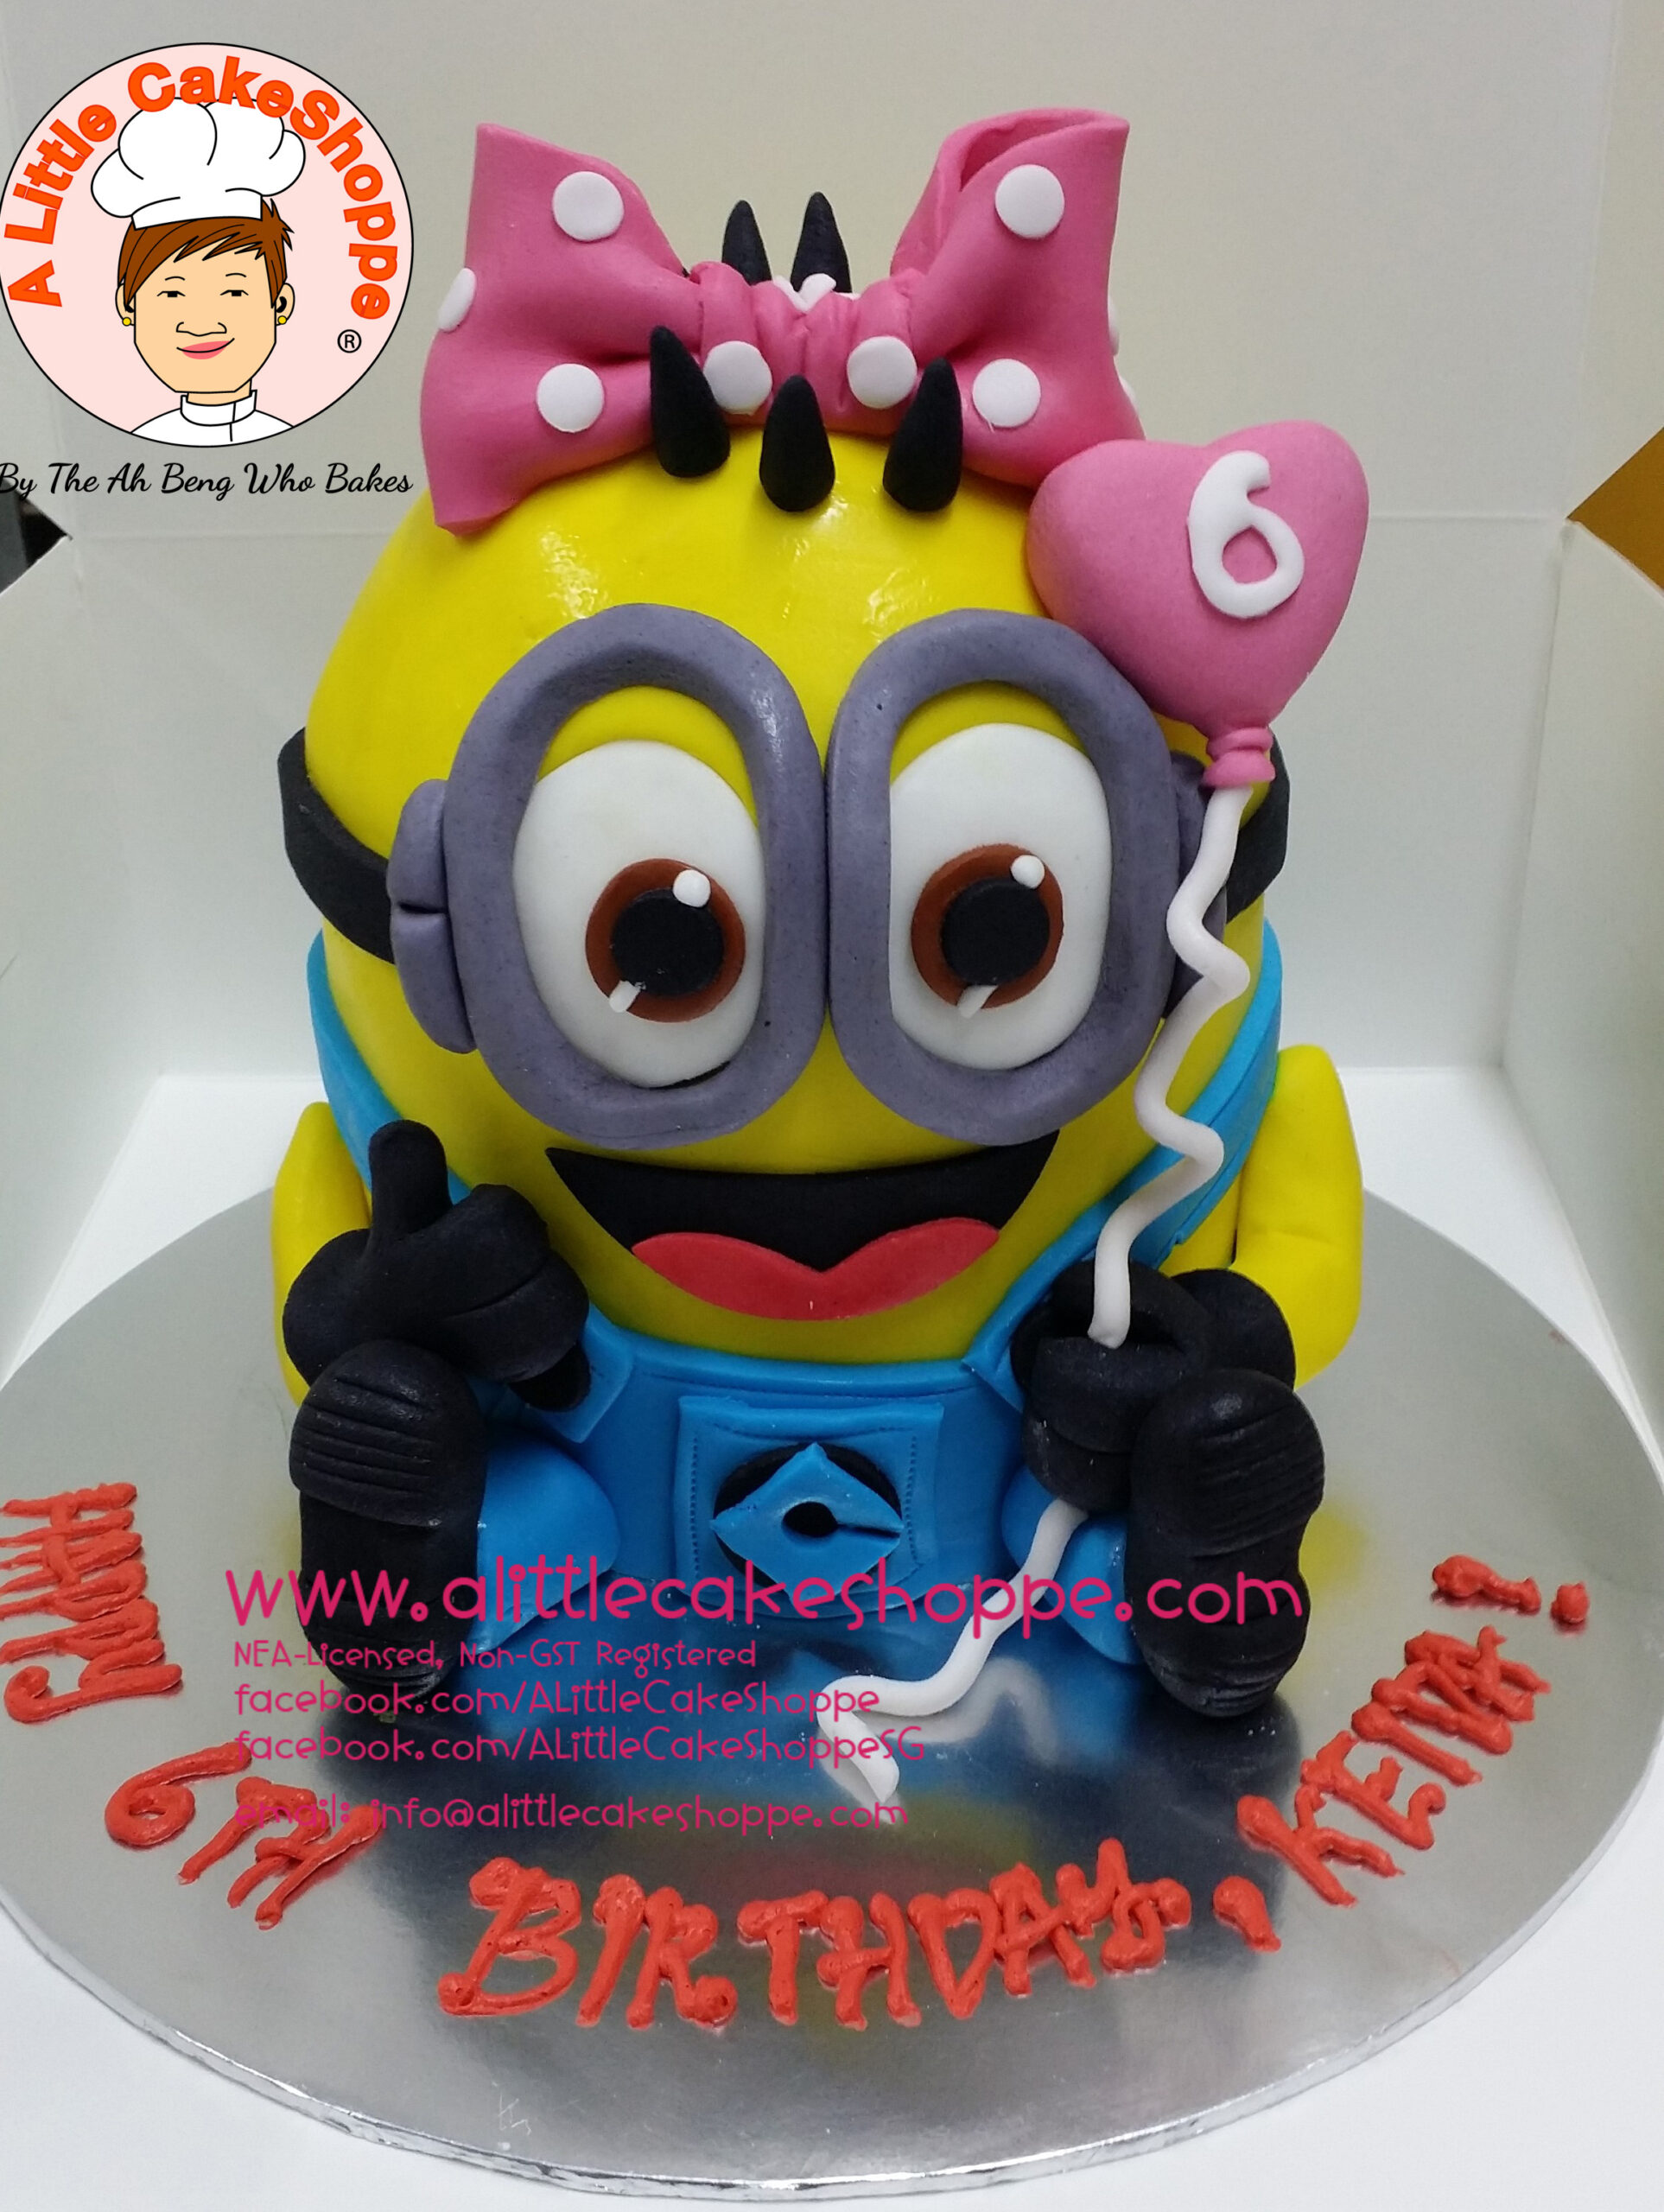 Best Customised Cake Shop Singapore custom cake 2D 3D birthday cake cupcakes desserts wedding corporate events anniversary 1st birthday 21st birthday fondant fresh cream buttercream cakes alittlecakeshoppe a little cake shoppe compliments review singapore bakers SG cake shop cakeshop ah beng who bakes minion